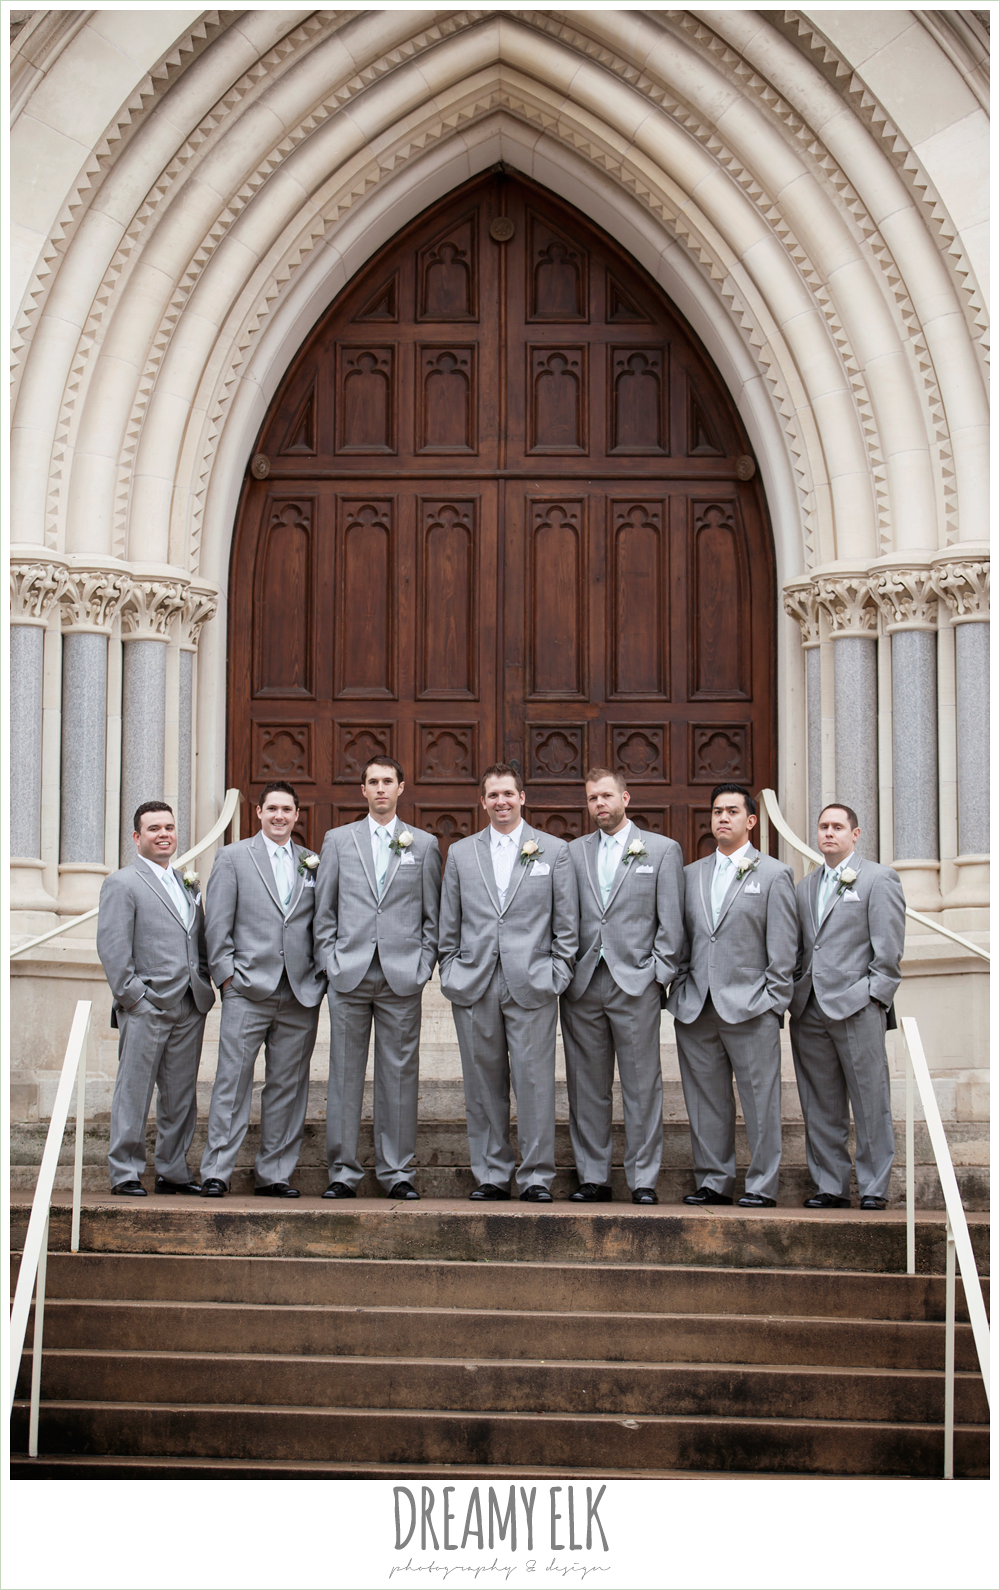 groom and groom in gray suits, downtown austin wedding {dreamy elk photography and design}